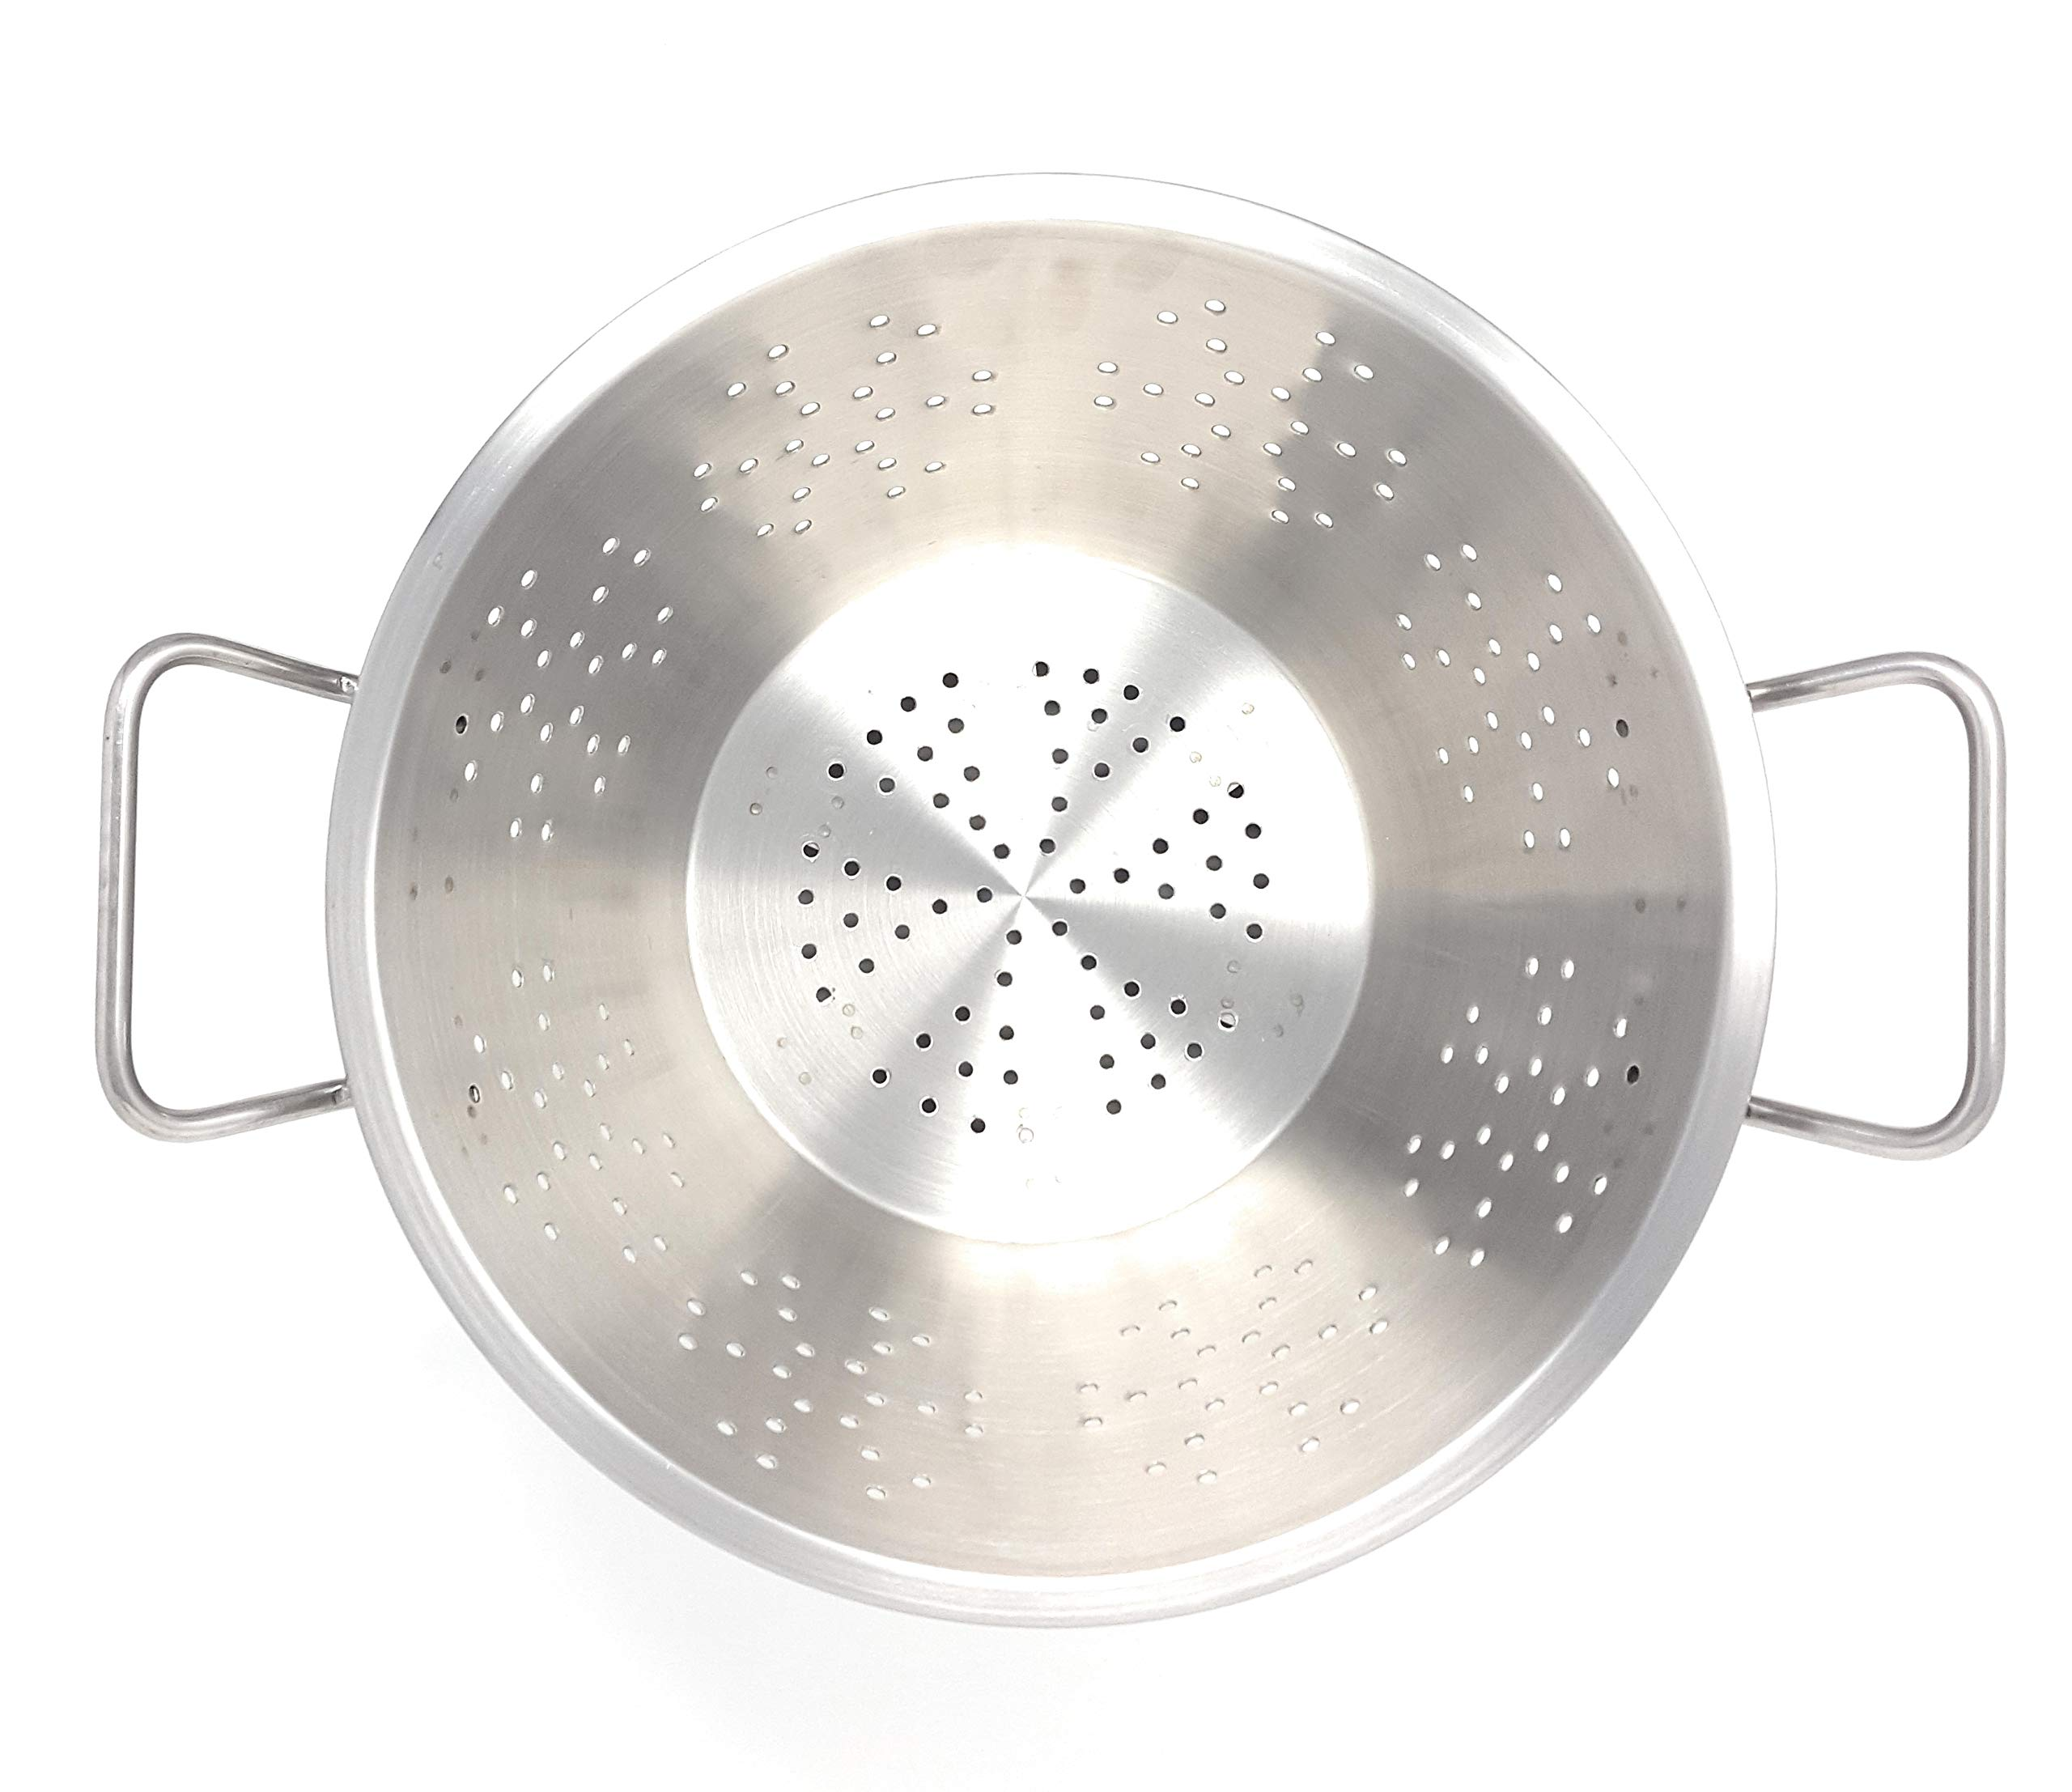 Heavy Duty Stainless Steel Professional 8.0 Quart Conical Colander - Commercial Cookware. by Avon Appliances